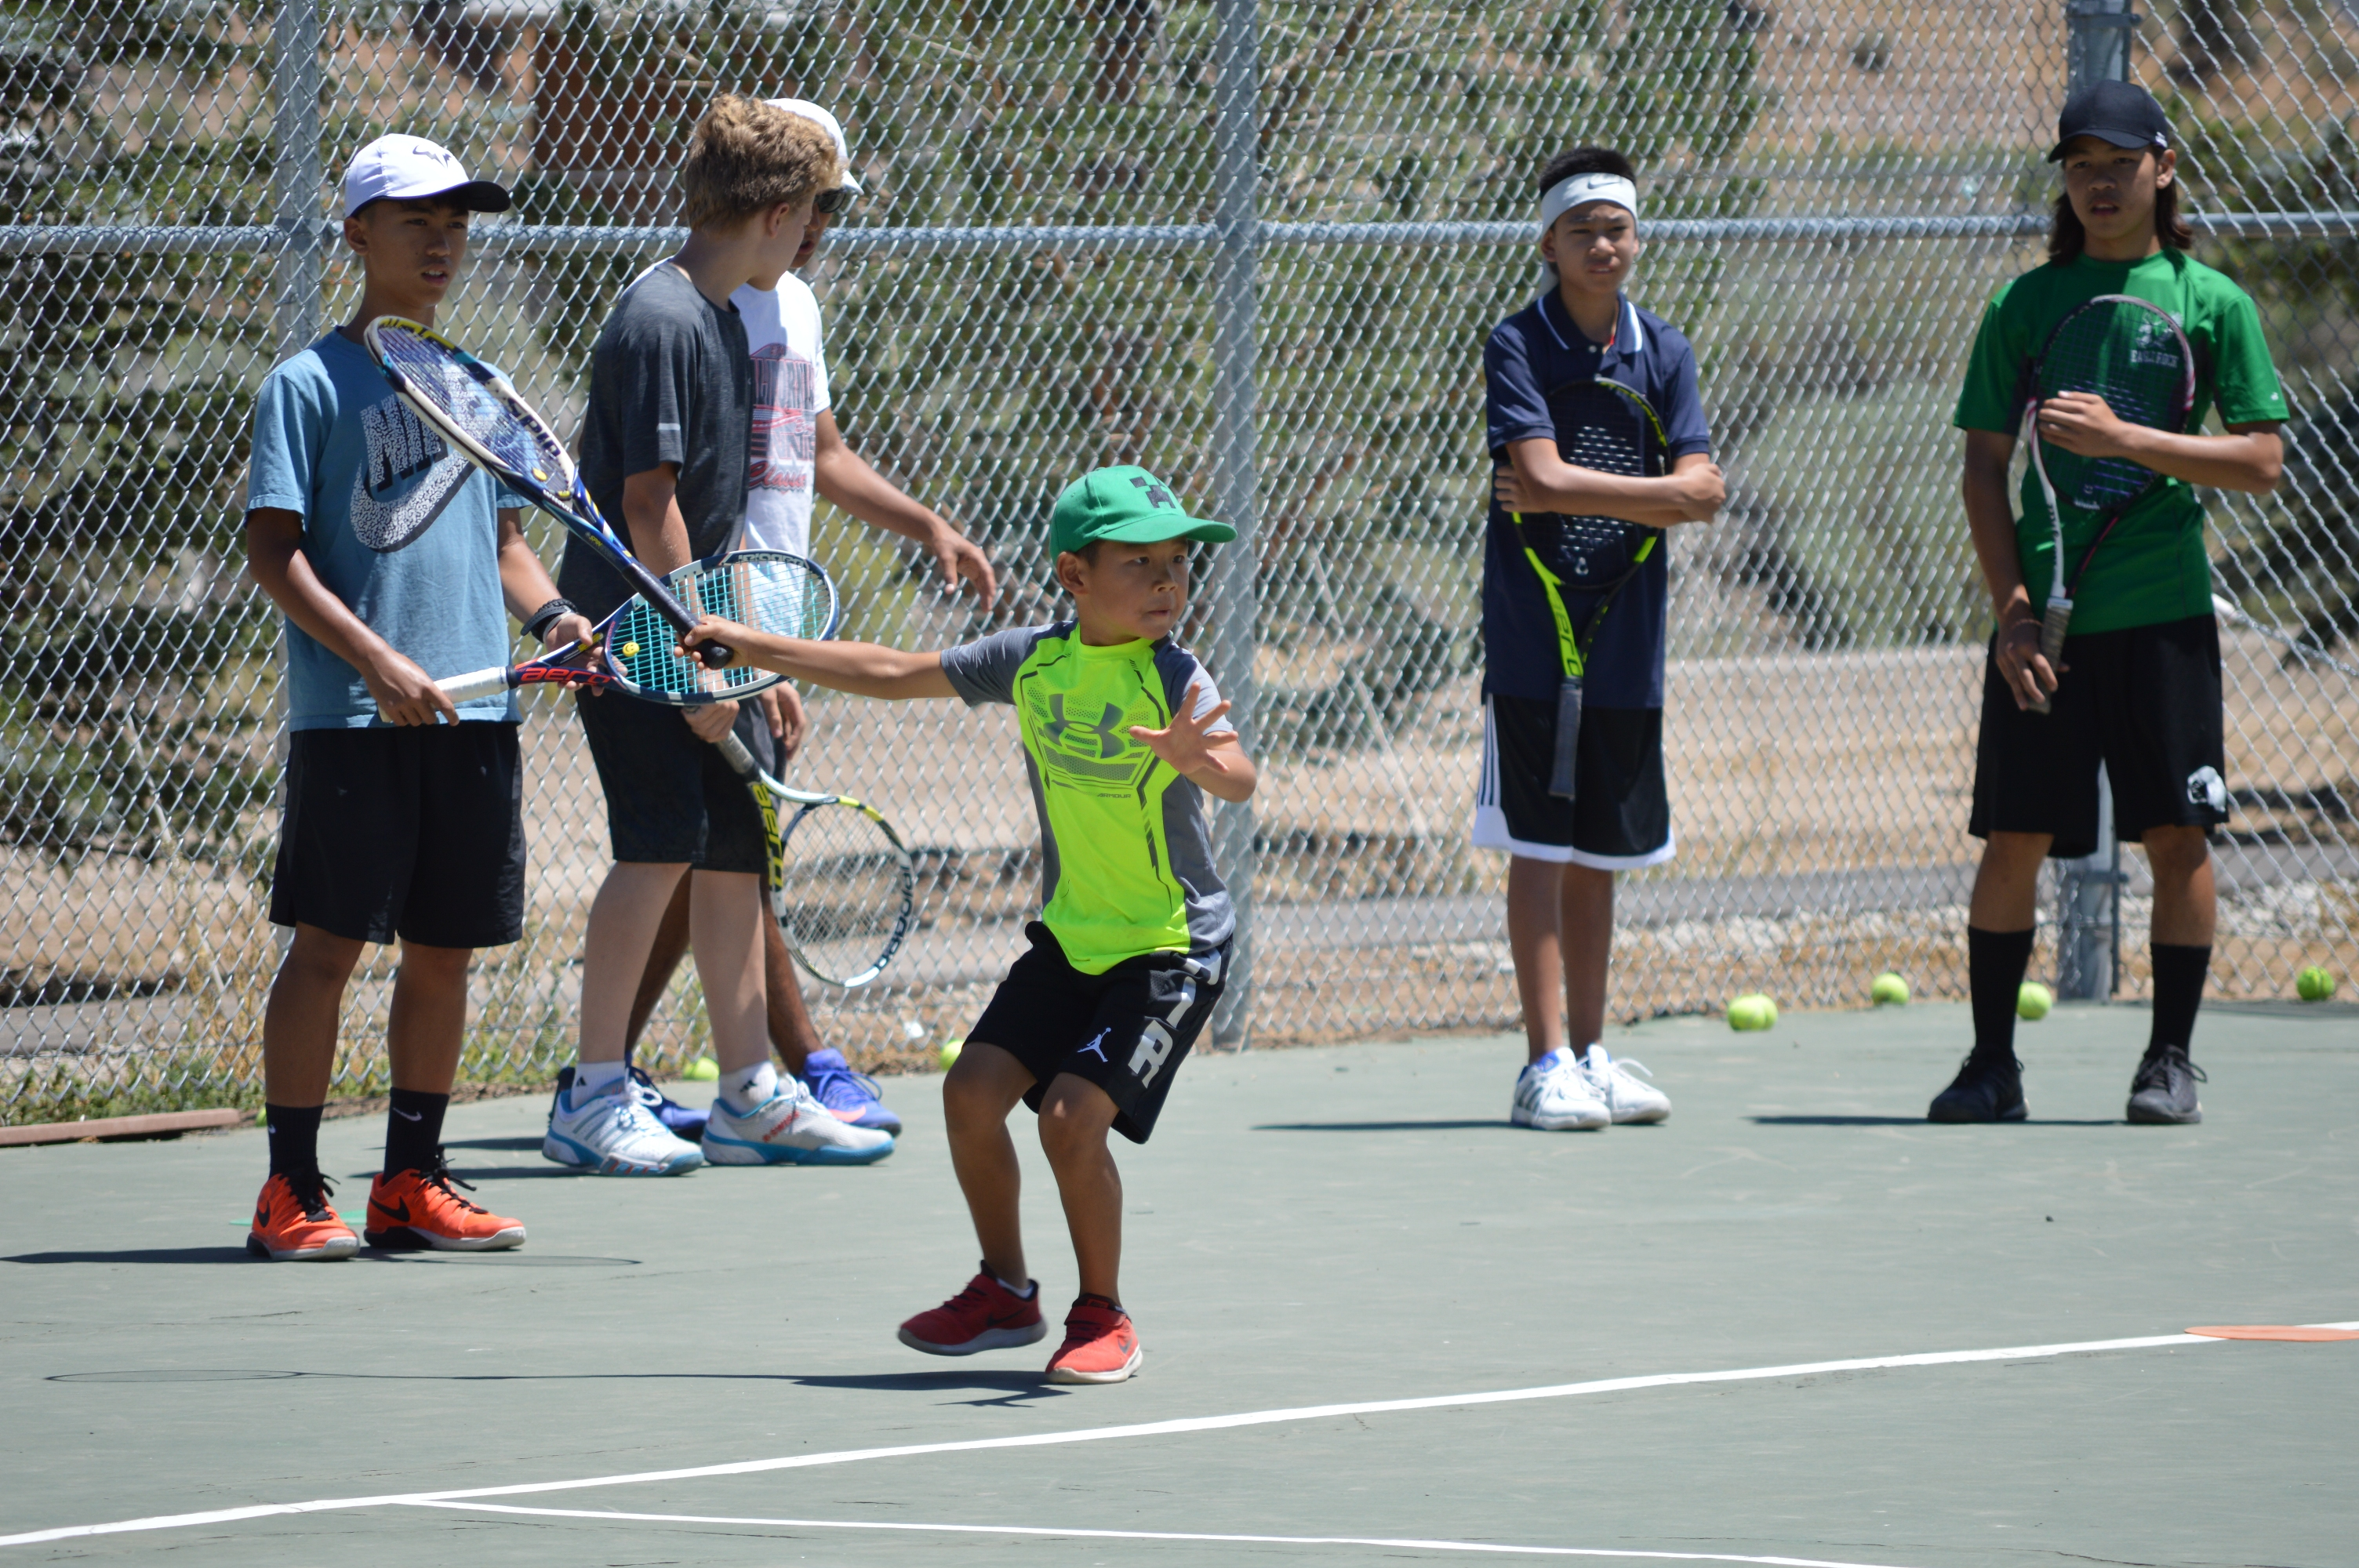 2 Ways to Get Kids Excited About Tennis